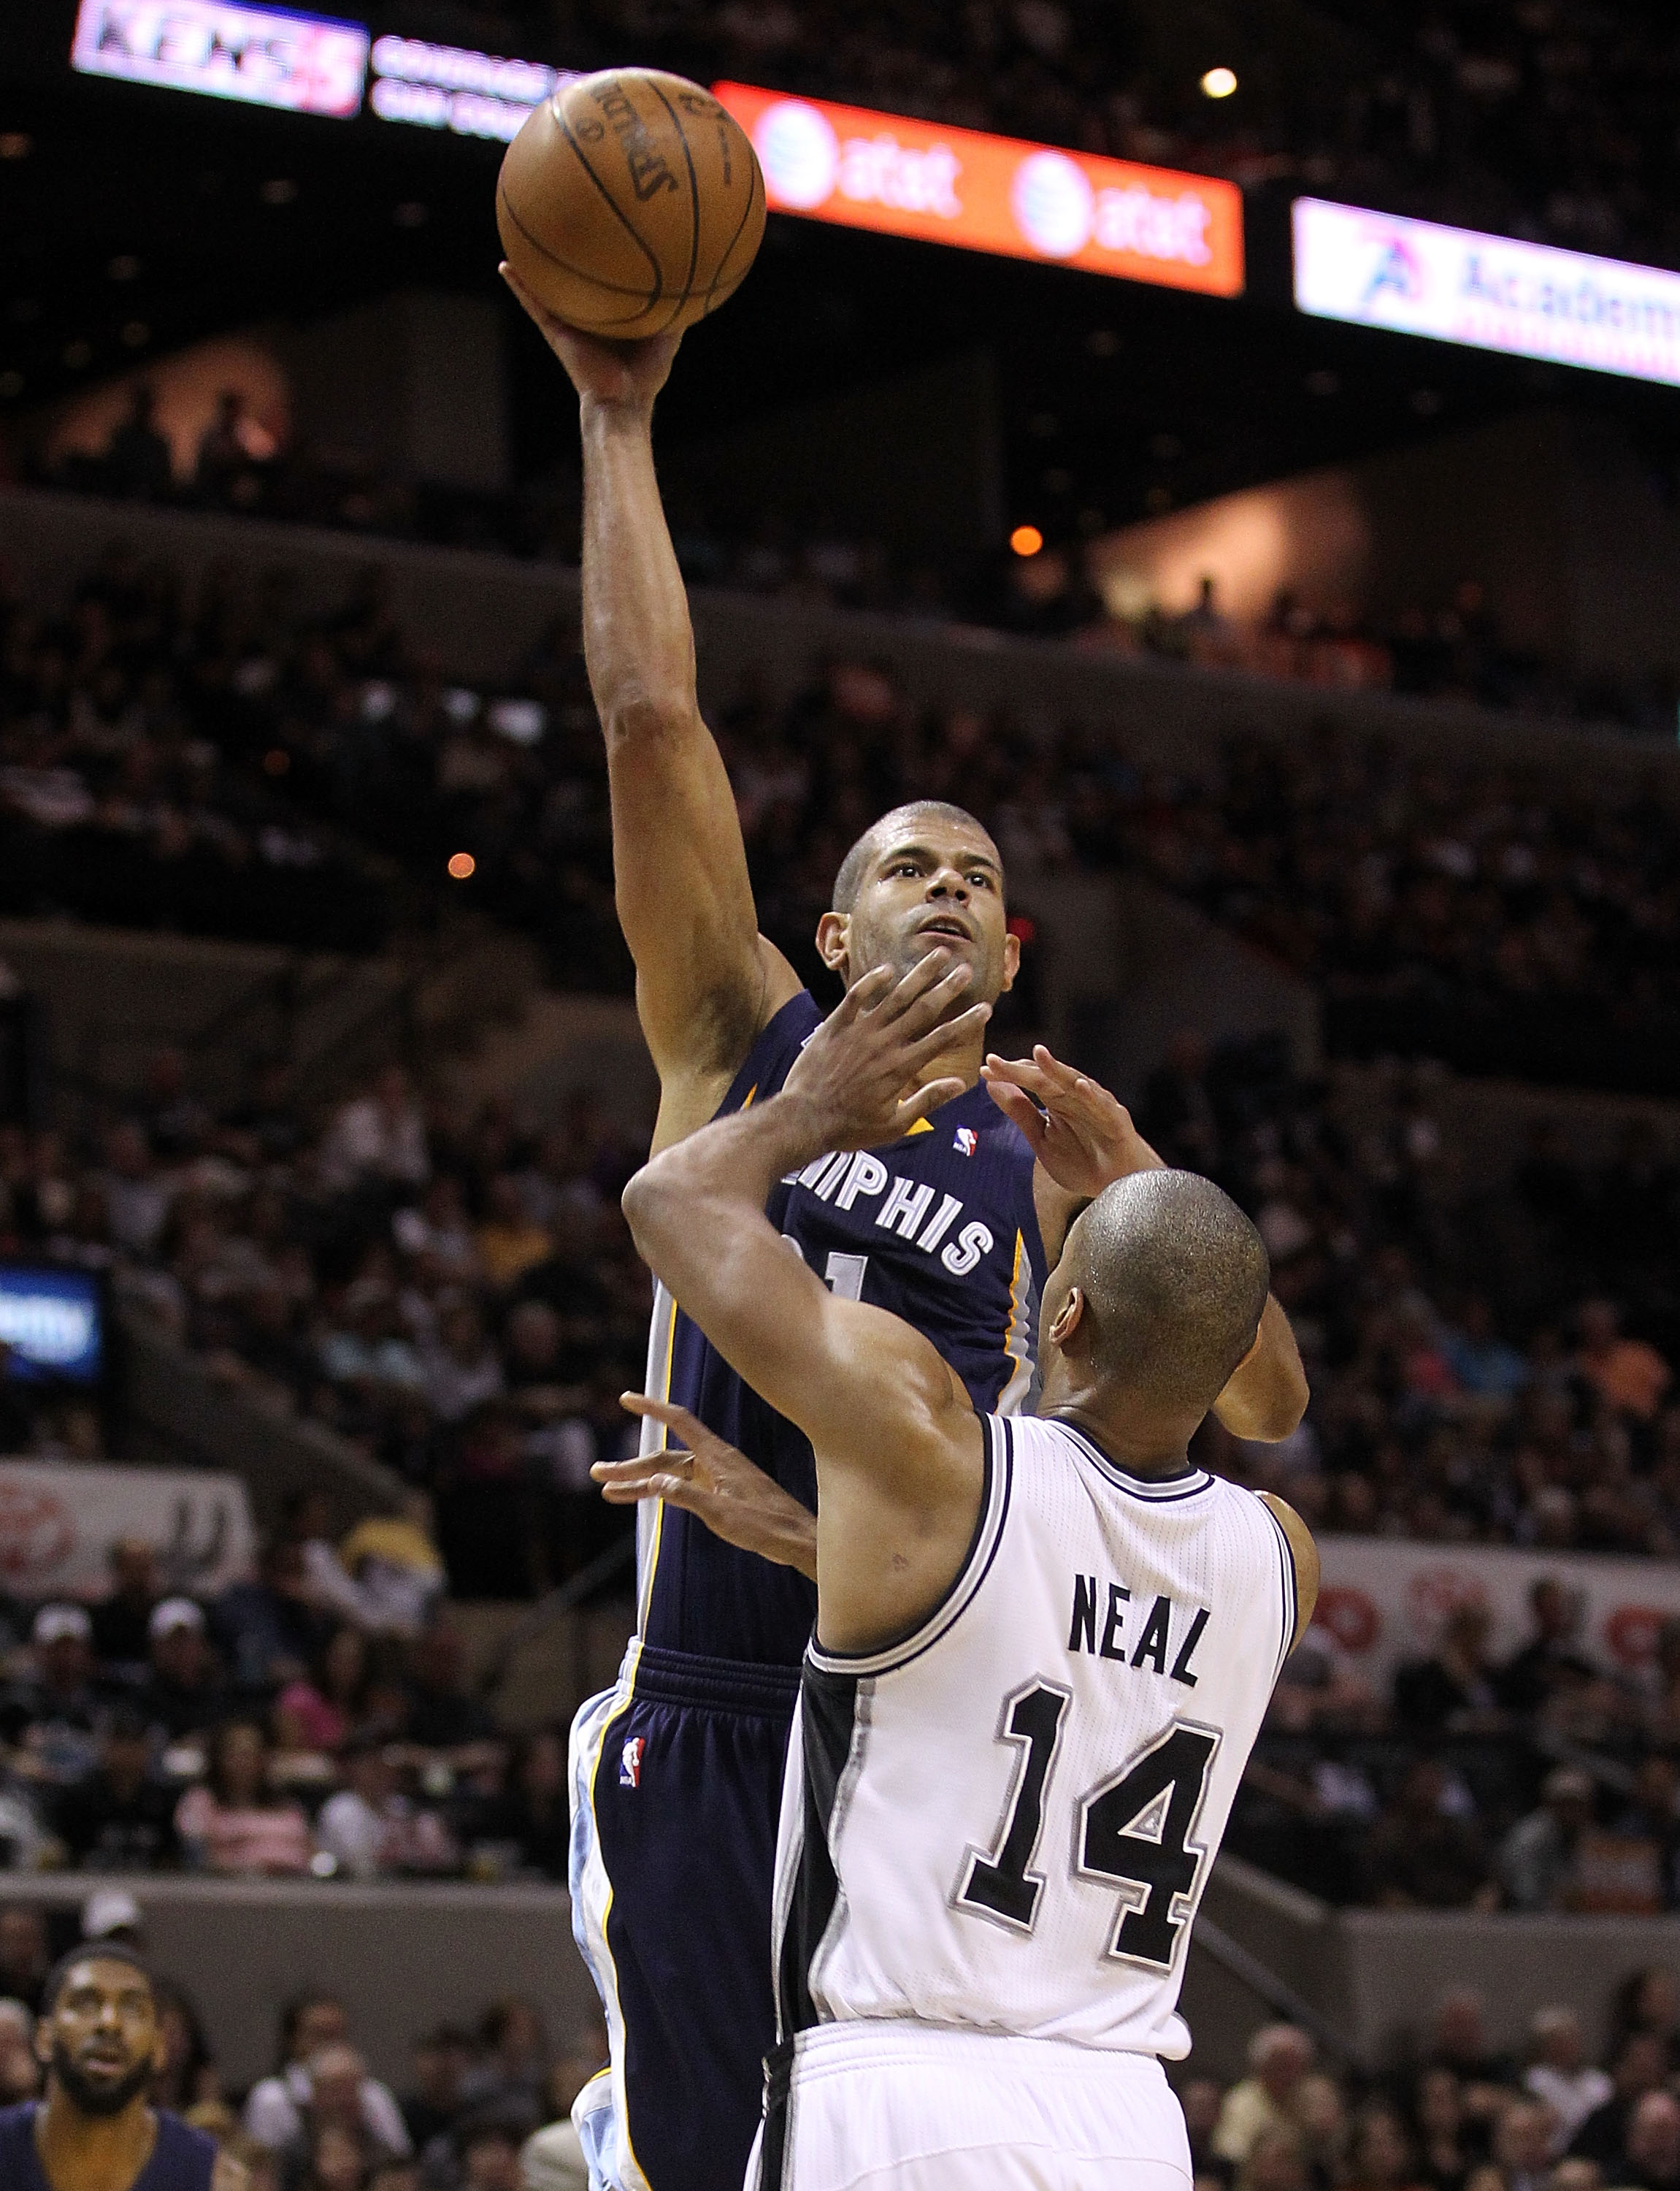 SAN ANTONIO, TX - APRIL 17:  Forward Shane Battier #31 of the Memphis Grizzlies takes a shot against Gary Neal #14 of the San Antonio Spurs in Game One of the Western Conference Quarterfinals in the 2011 NBA Playoffs on April 17, 2011 at AT&T Center in Sa